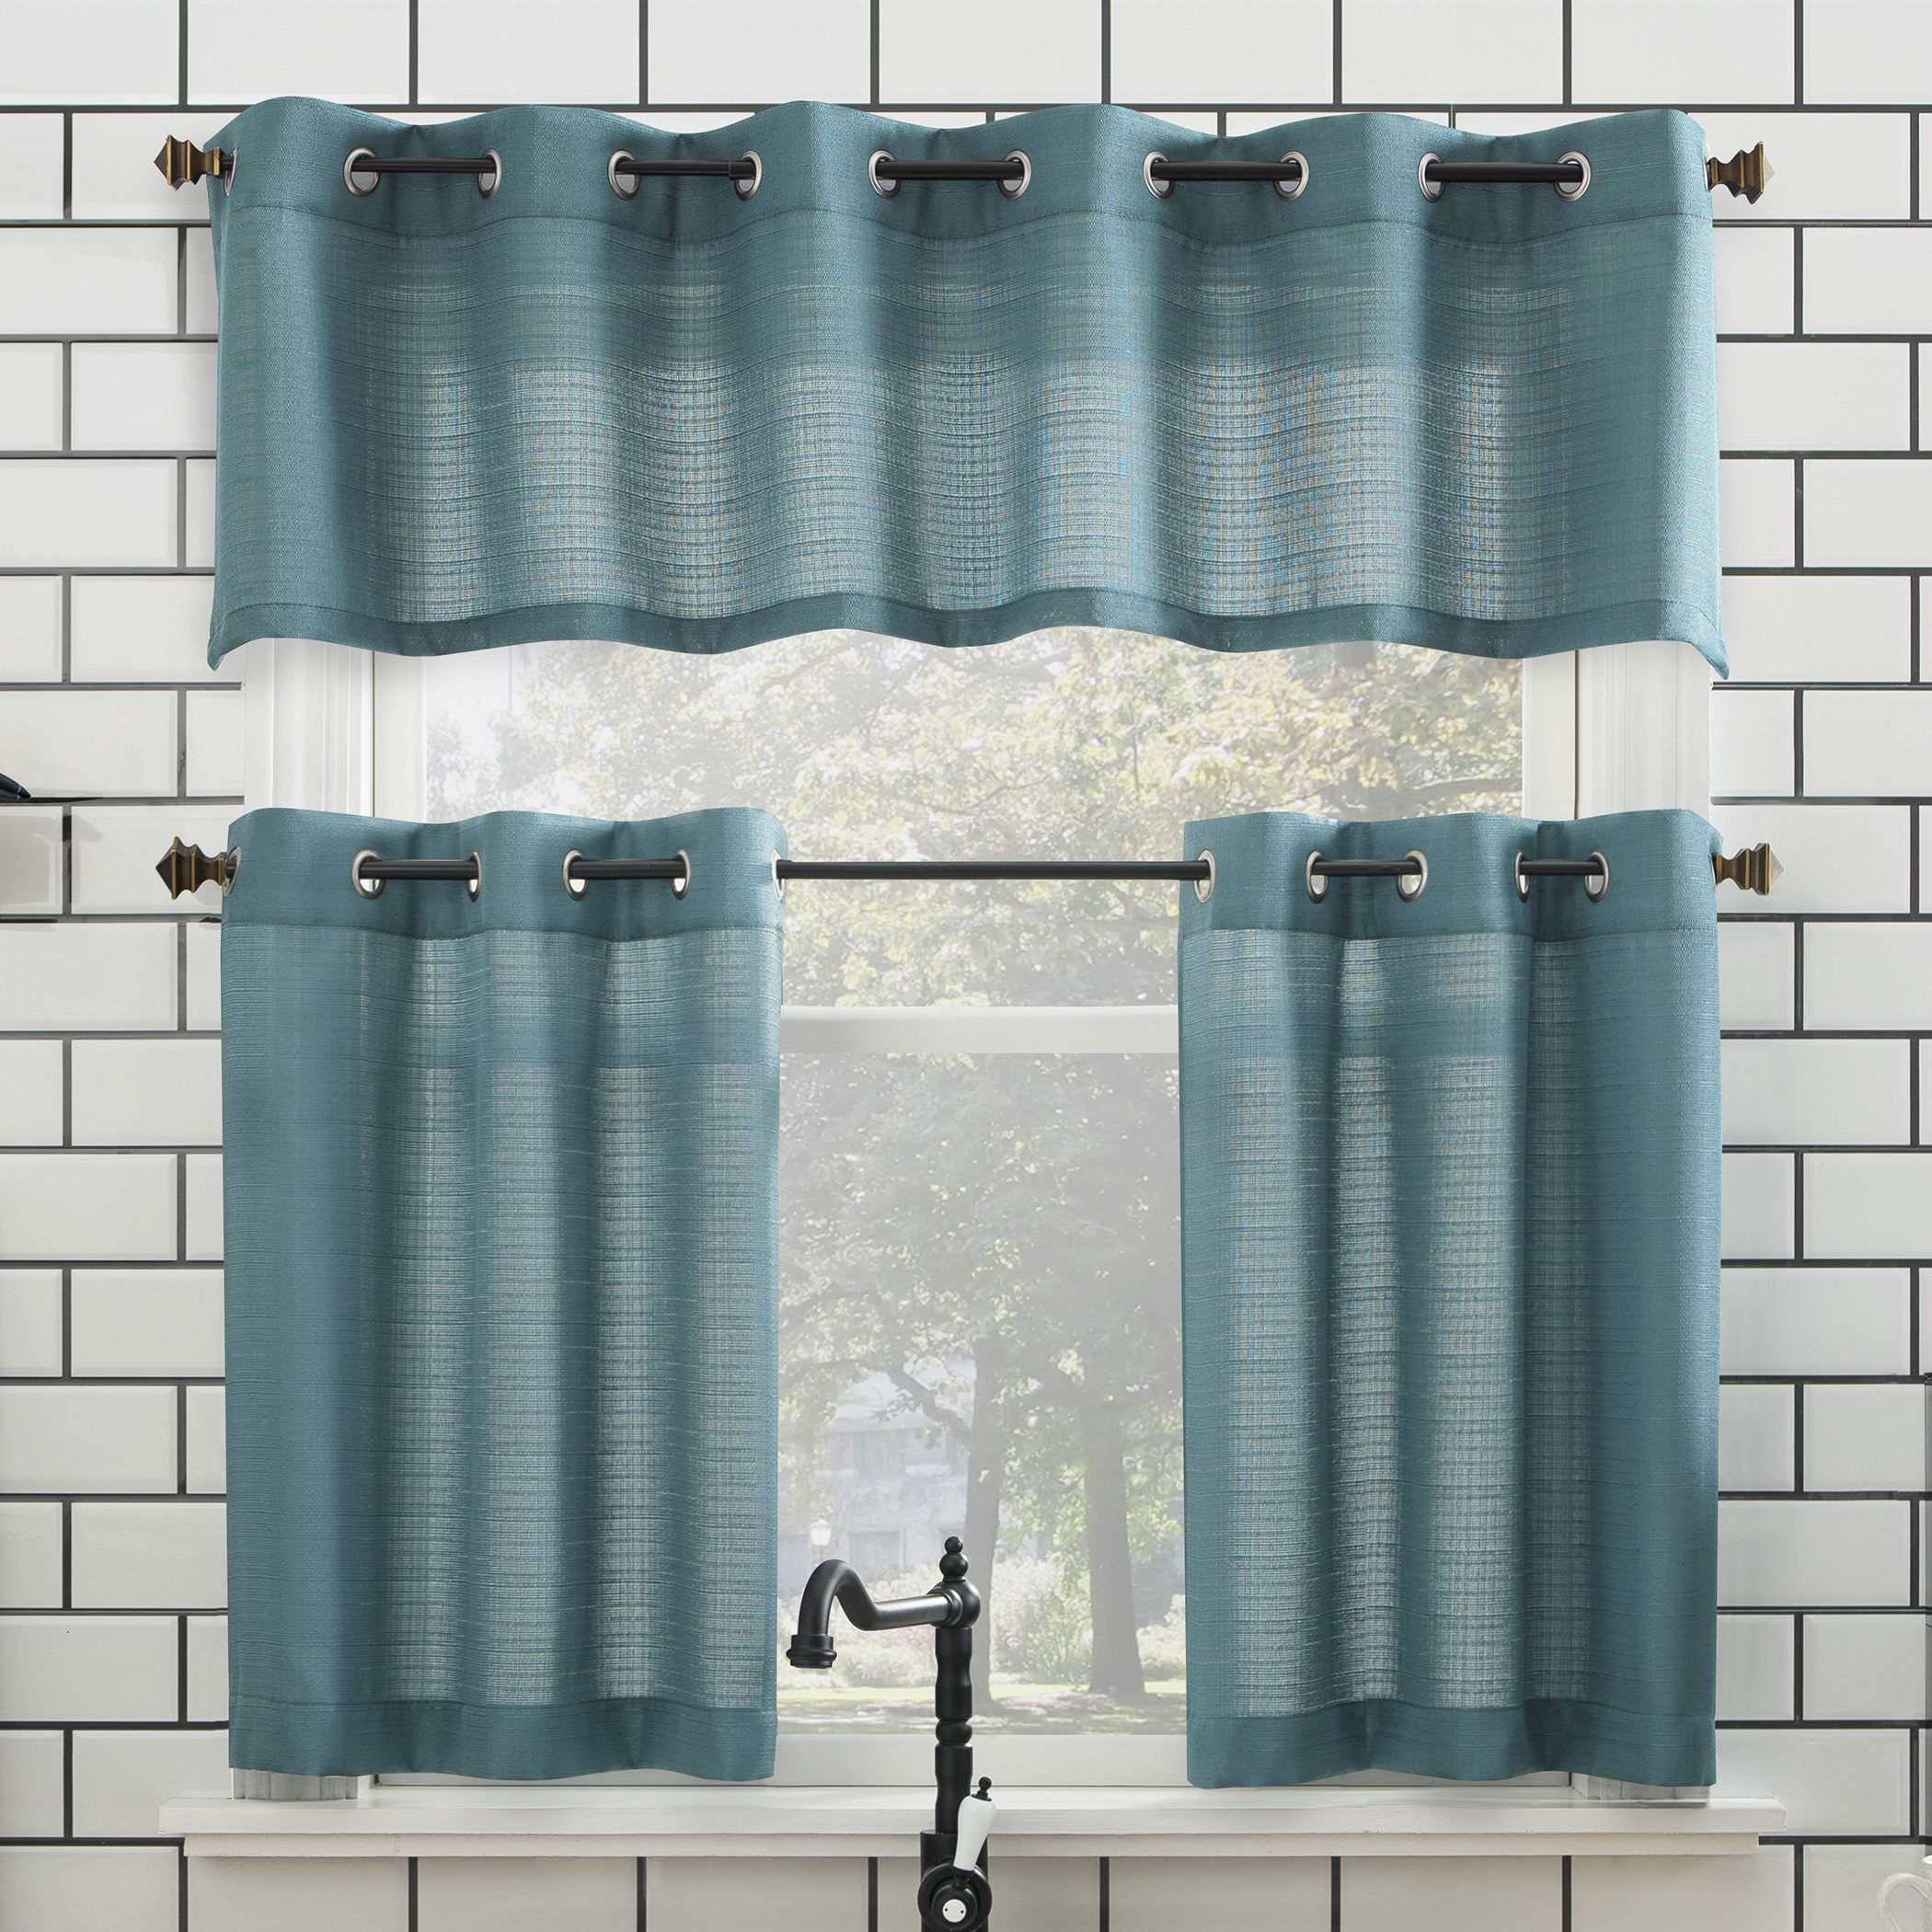 Mainstays Solid Grommet 3 Piece Kitchen Curtain Tier And Valance Set Pertaining To Microfiber 3 Piece Kitchen Curtain Valance And Tiers Sets (View 11 of 20)